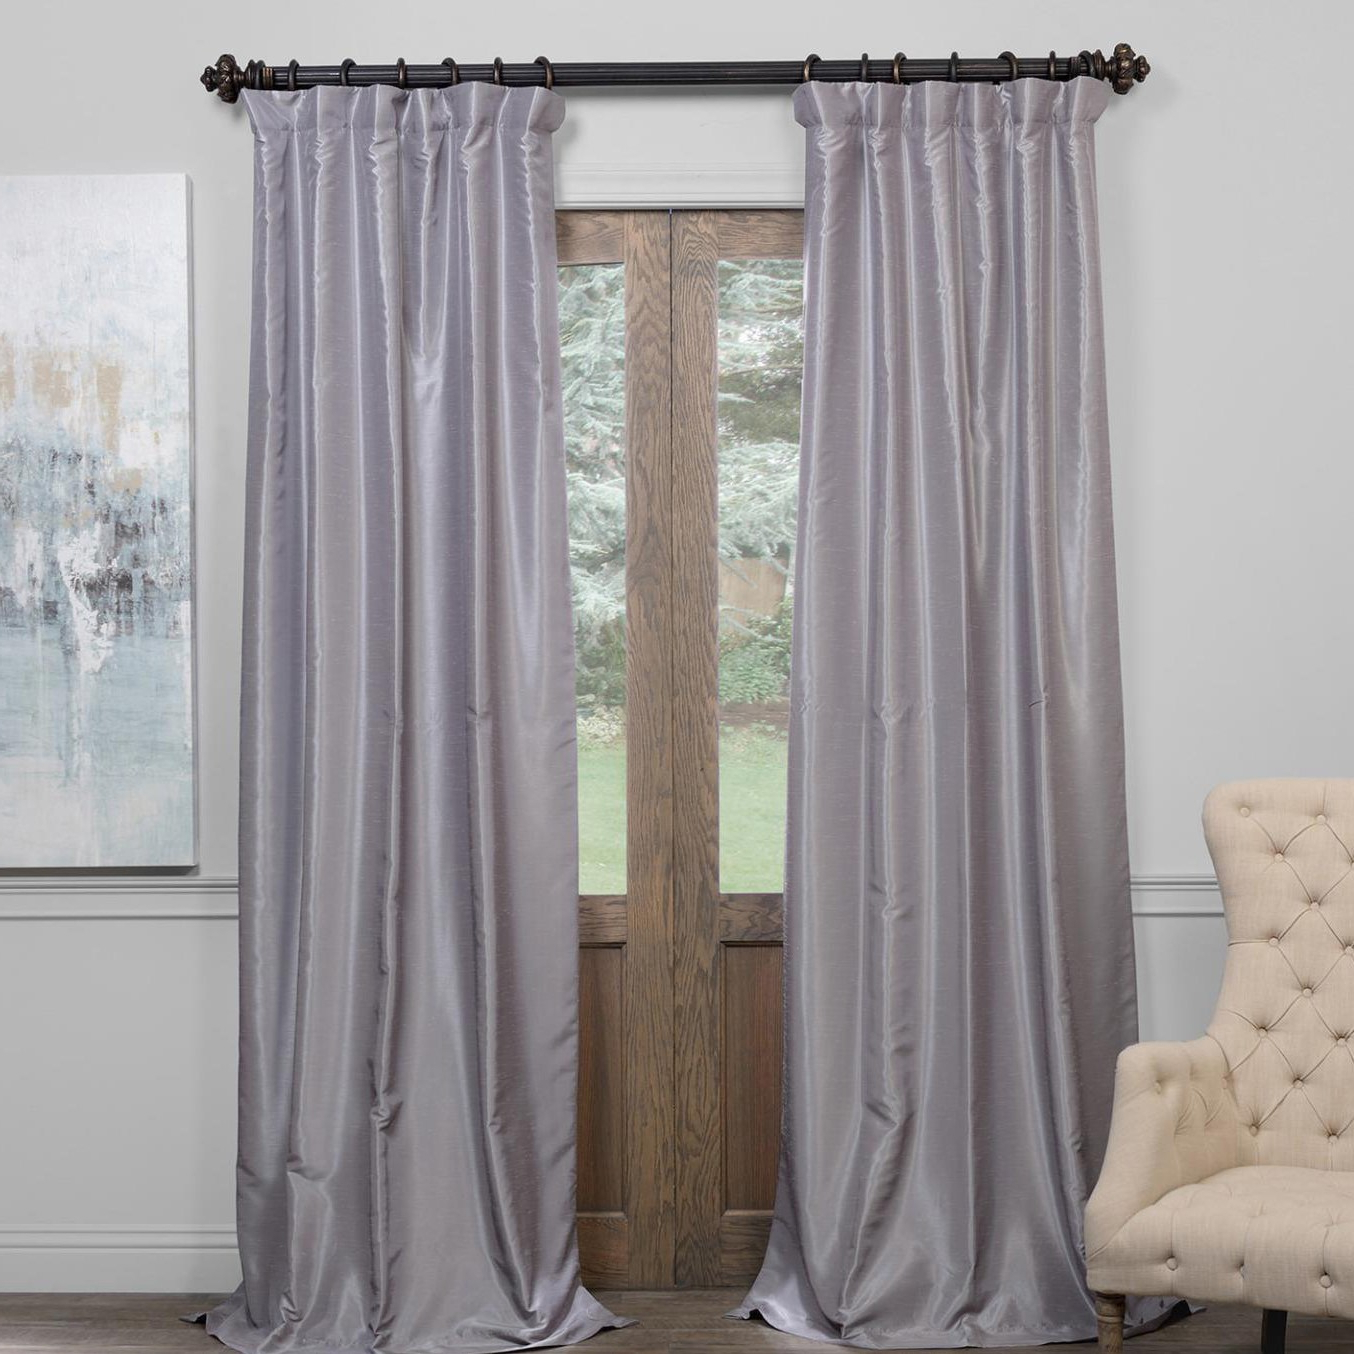 Newest Exclusive Fabrics True Blackout Vintage Textured Faux Dupioni Silk Curtain Panel In True Blackout Vintage Textured Faux Silk Curtain Panels (View 13 of 20)